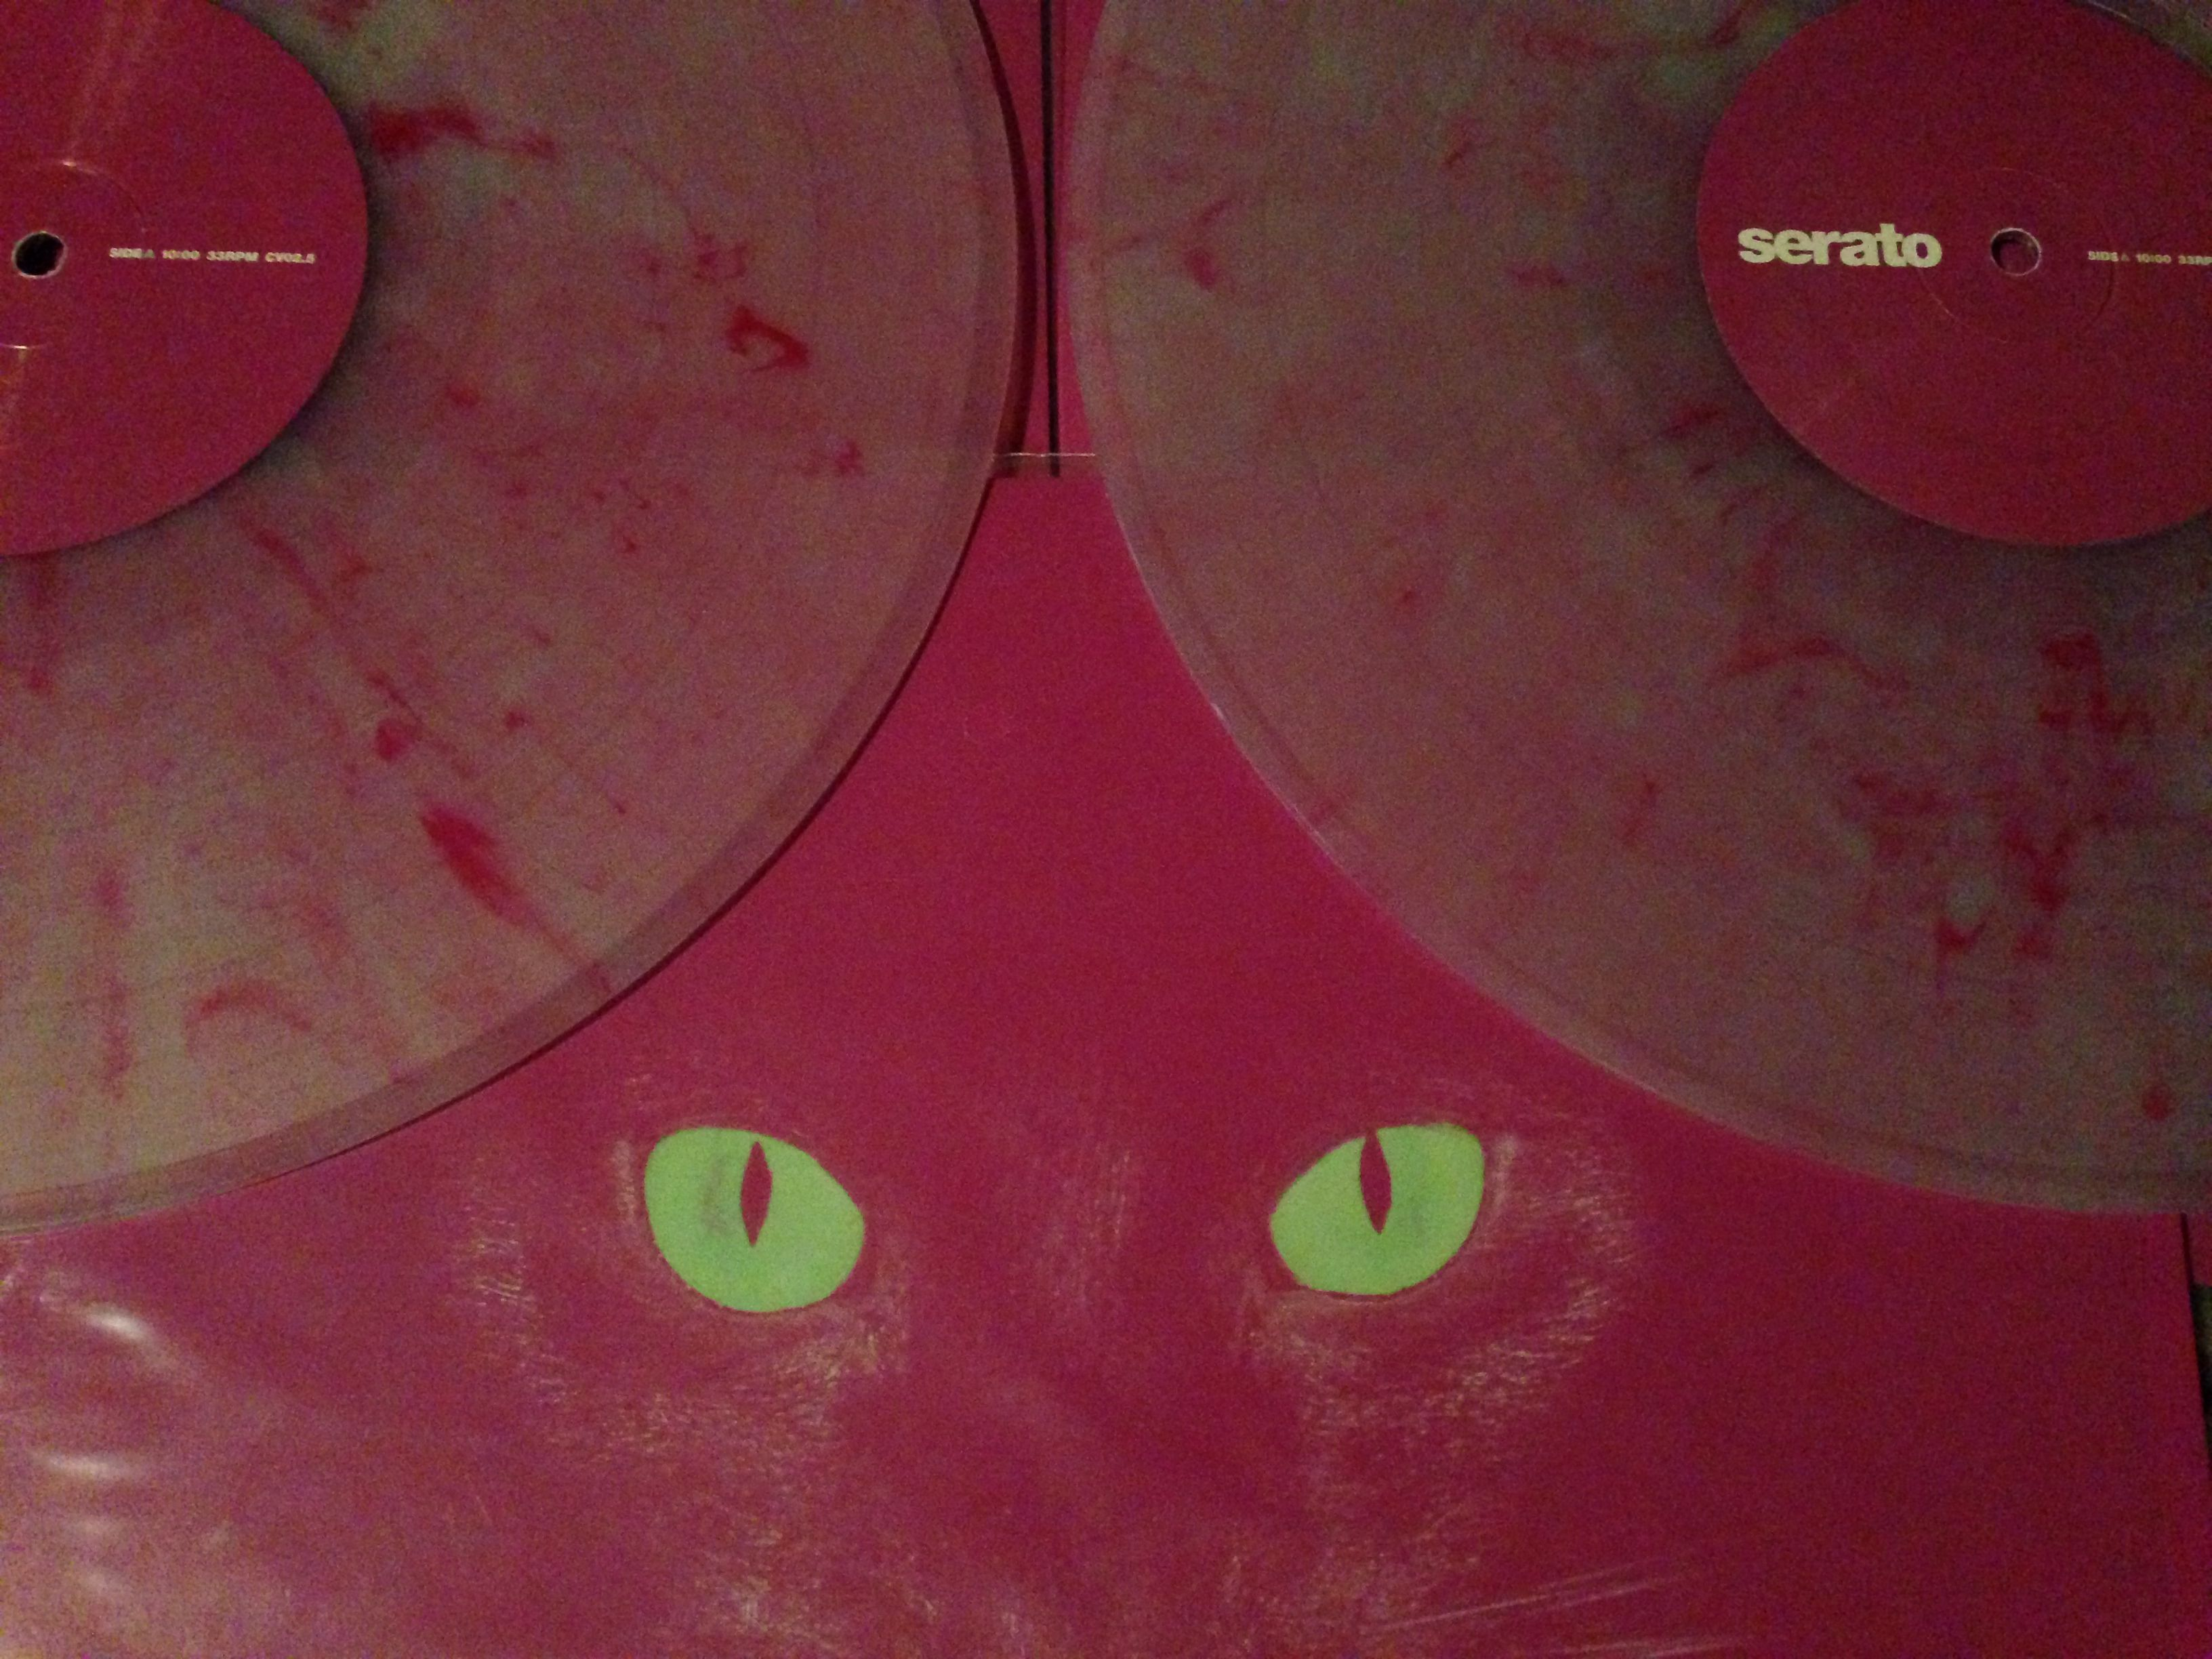 Serato Limited Edition Glow In The Dark Pink Translucent Marble By Day Control Vinyl Vinyl Dj Gear Glow In The Dark